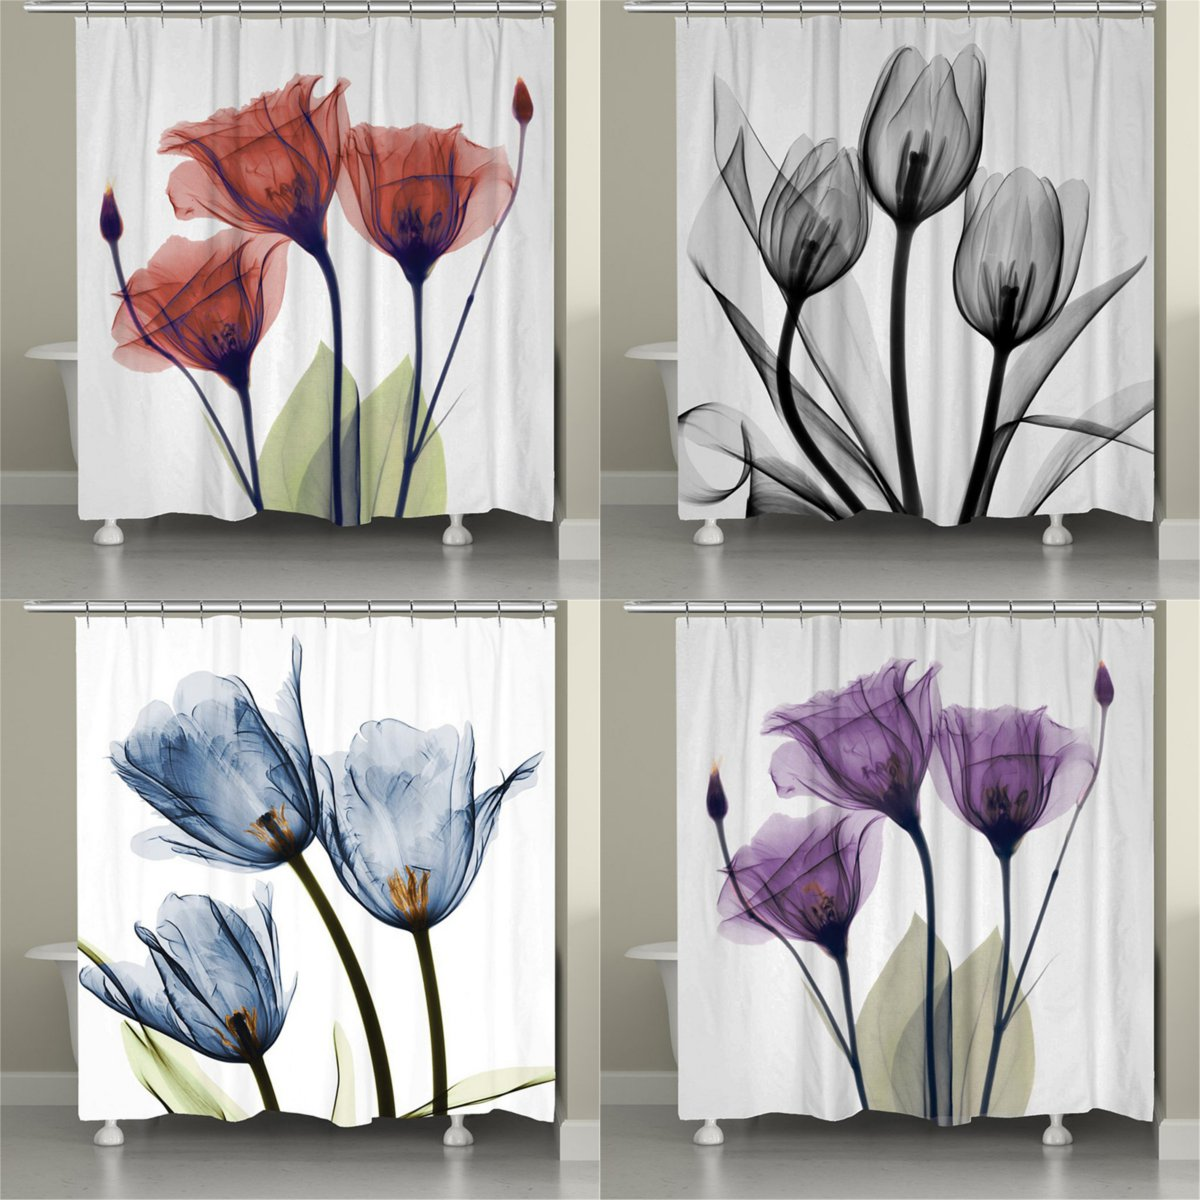 watercolor flannel tulip flower shower curtain summer colorful tulip flowers curtain in retro style painting effect nature is art cloth fabric